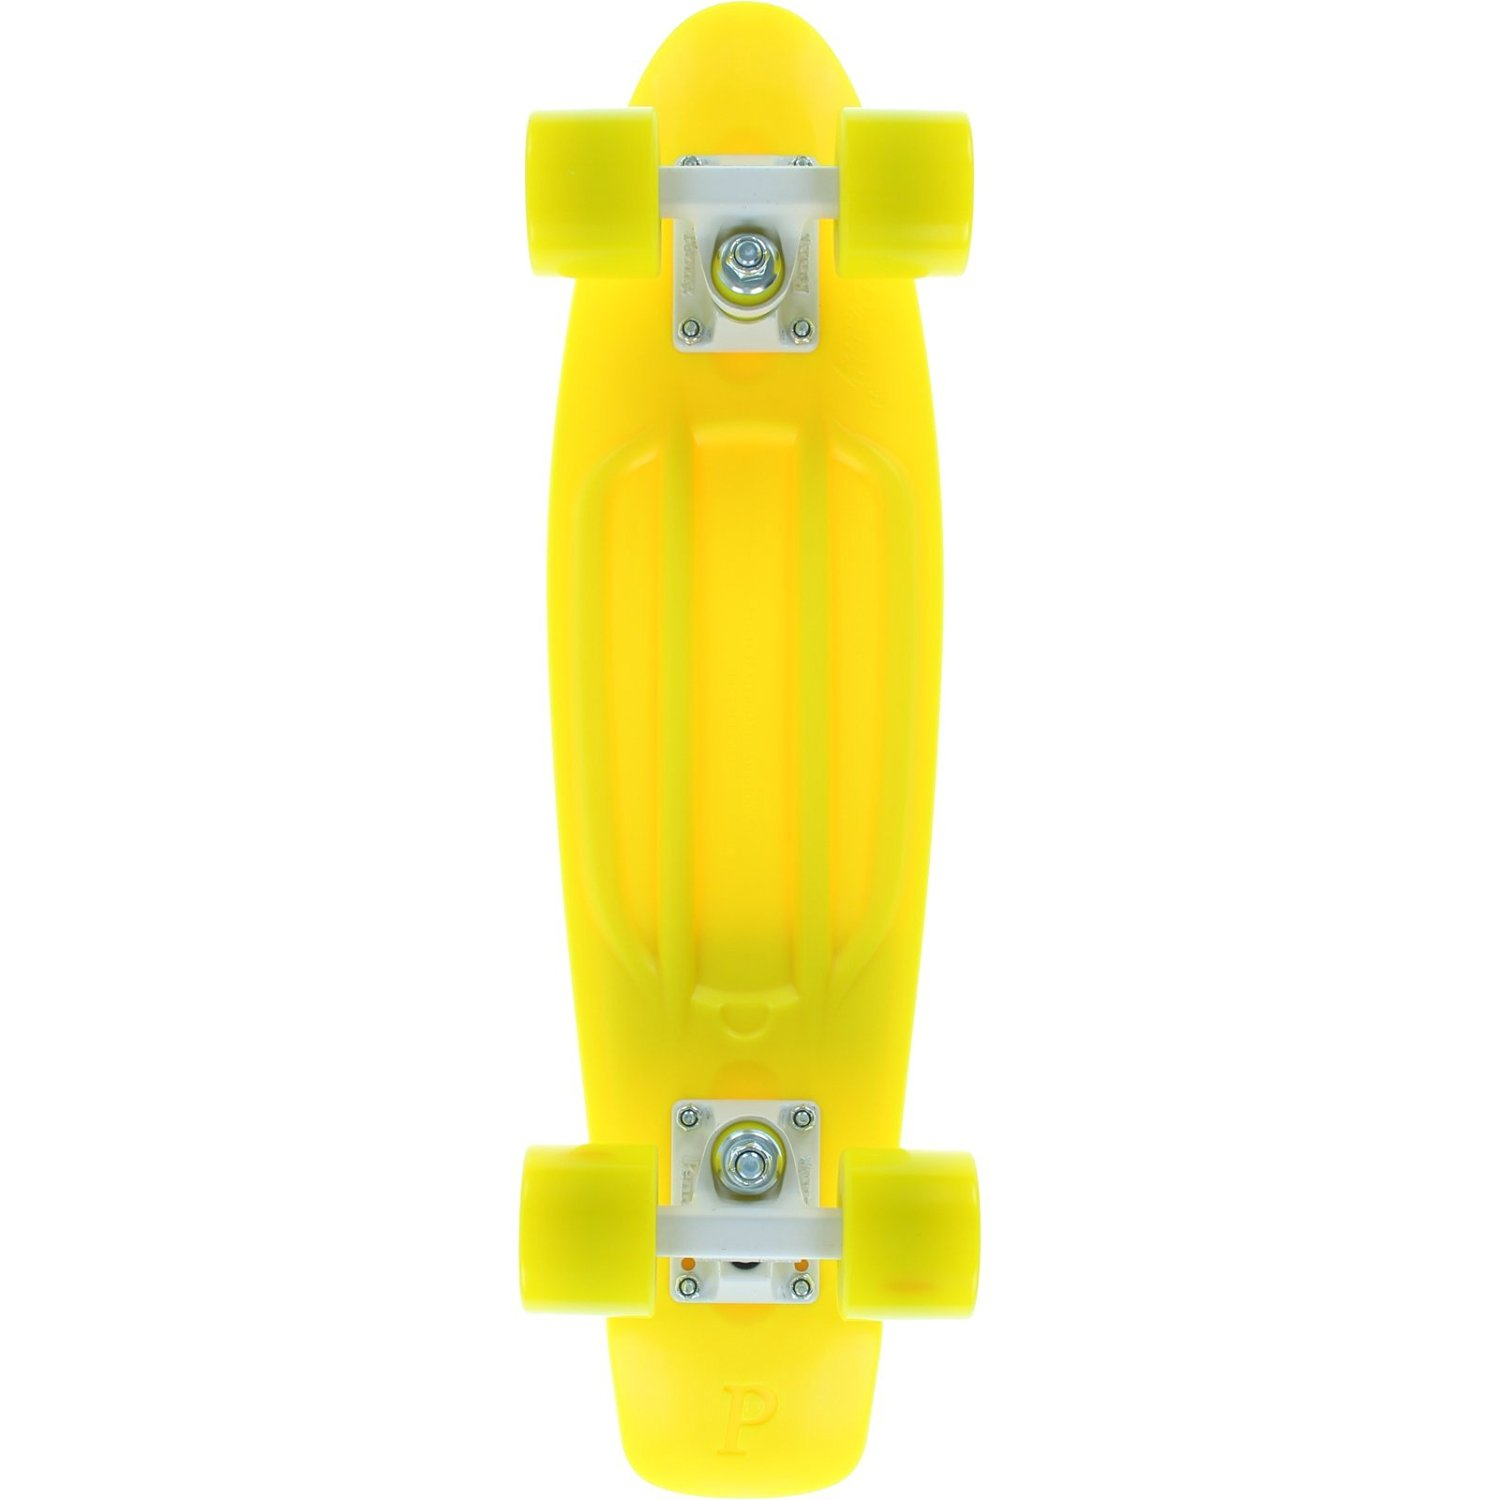 "Penny 22"" in Popsicle Yellow - Complete Skateboard - 100% Brand New Original!"